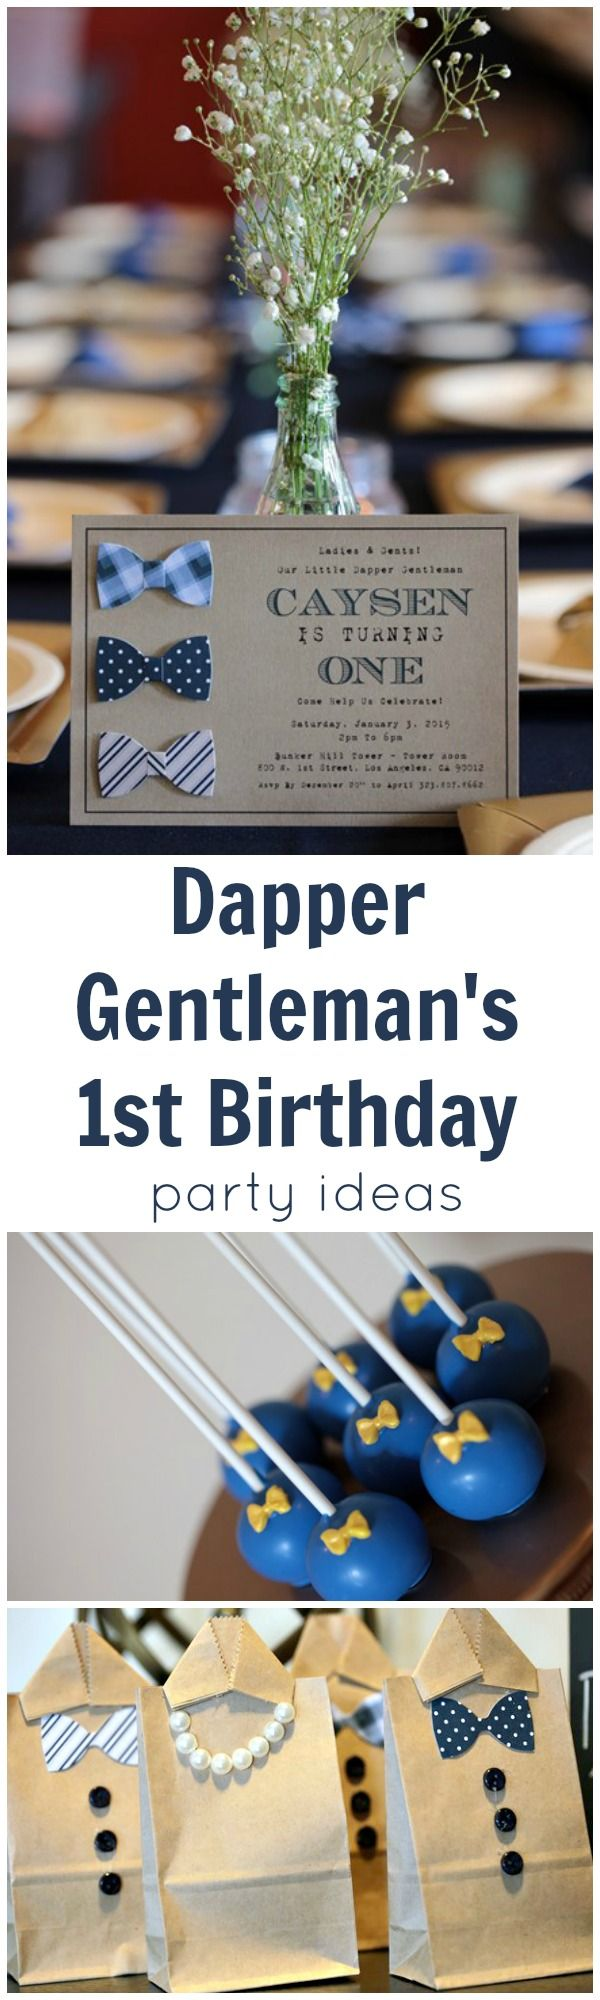 Dapper Gentleman's First Birthday Party Ideas I want to do this instead as keepsake pics for guests with a picture of the baby in a cute outfit